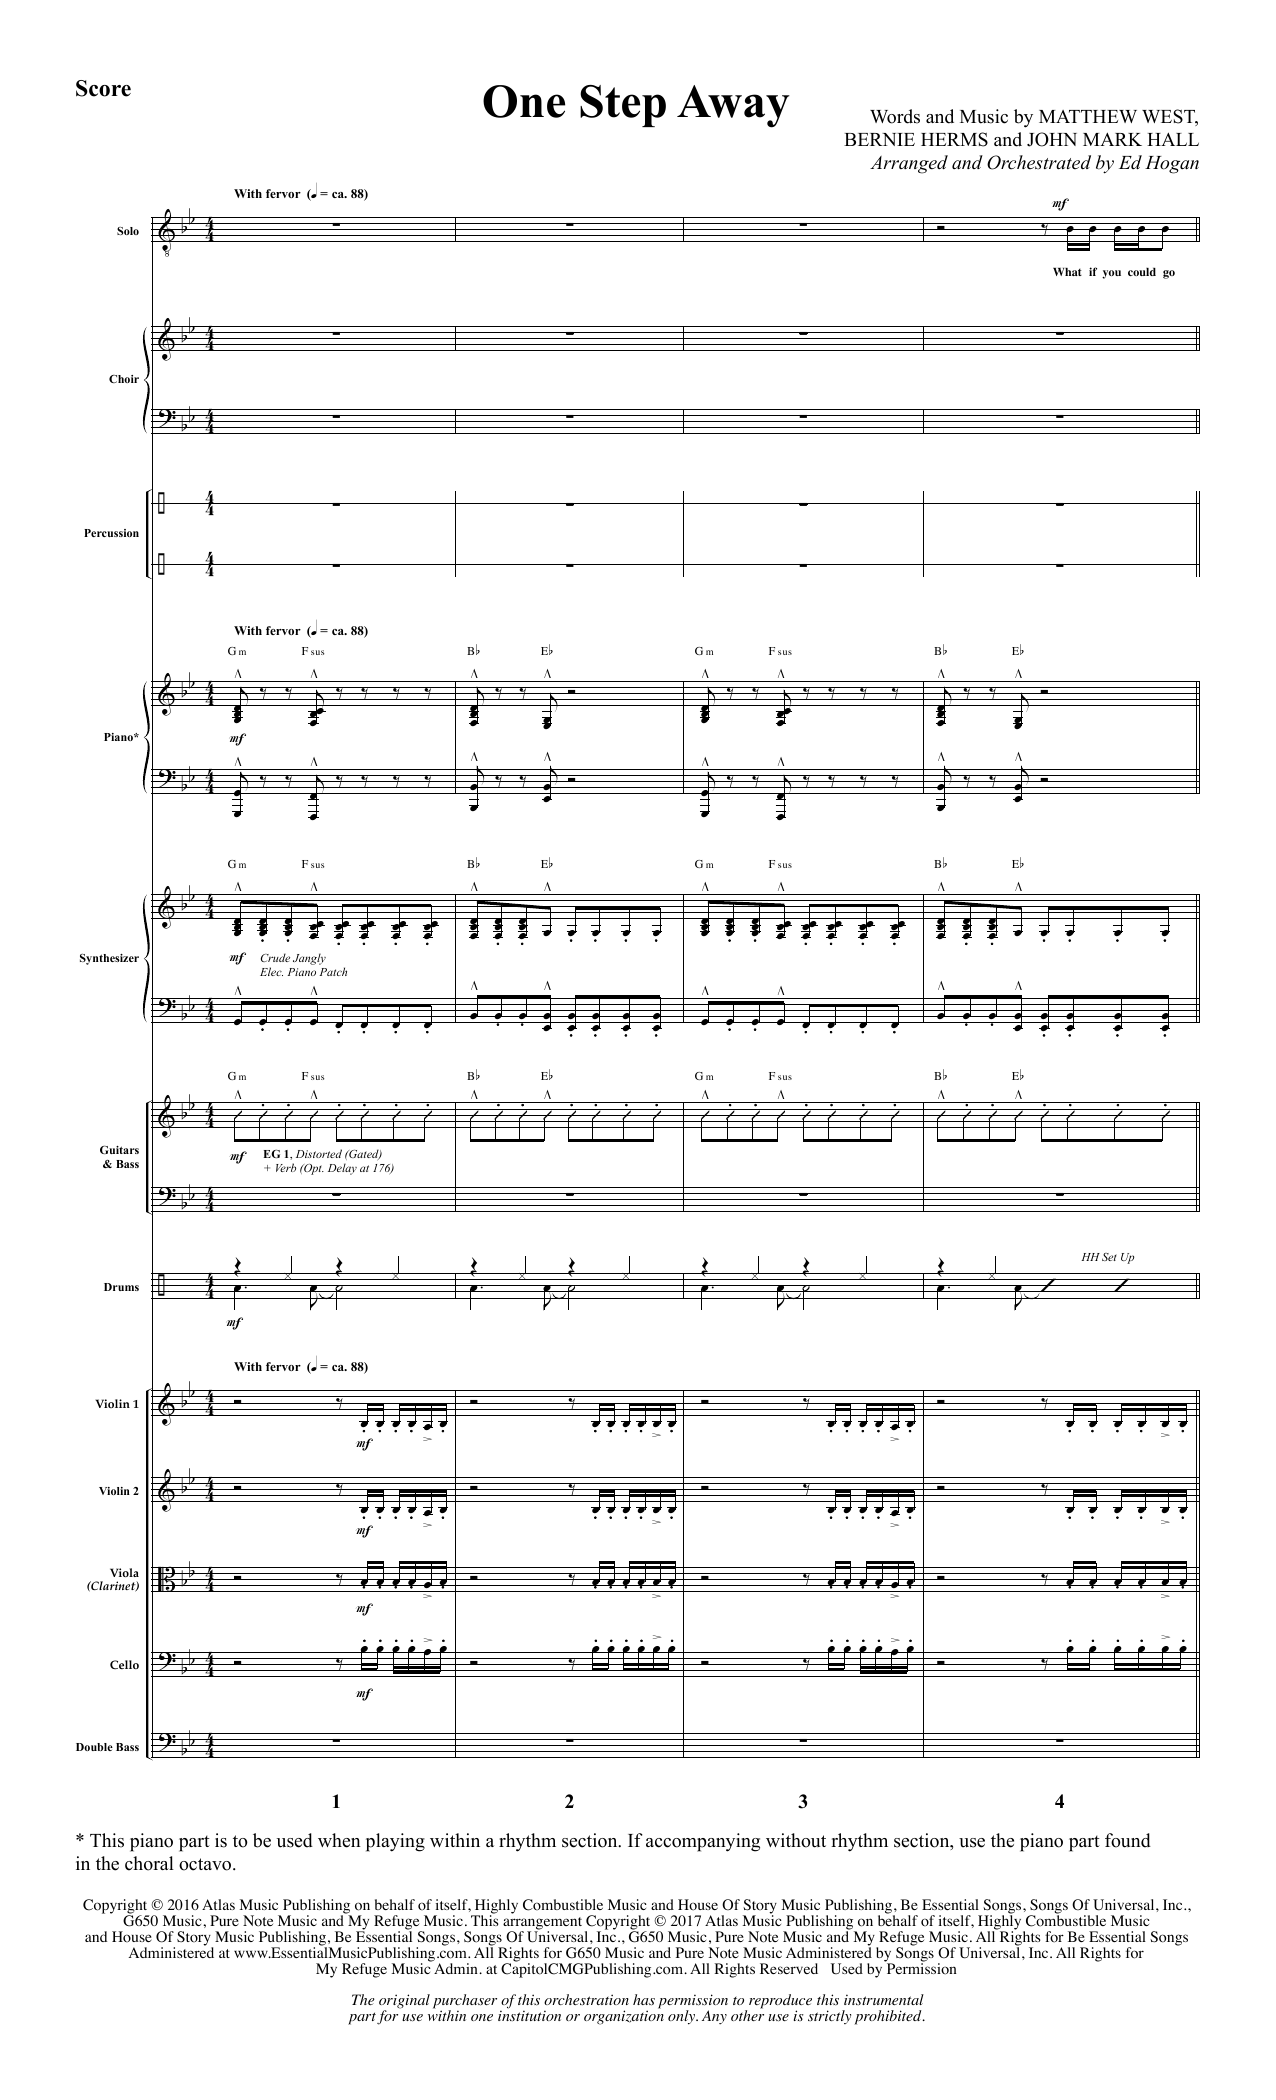 One Step Away (COMPLETE) sheet music for orchestra/band by Ed Hogan, Bernie Herms, Casting Crowns and Matthew West. Score Image Preview.